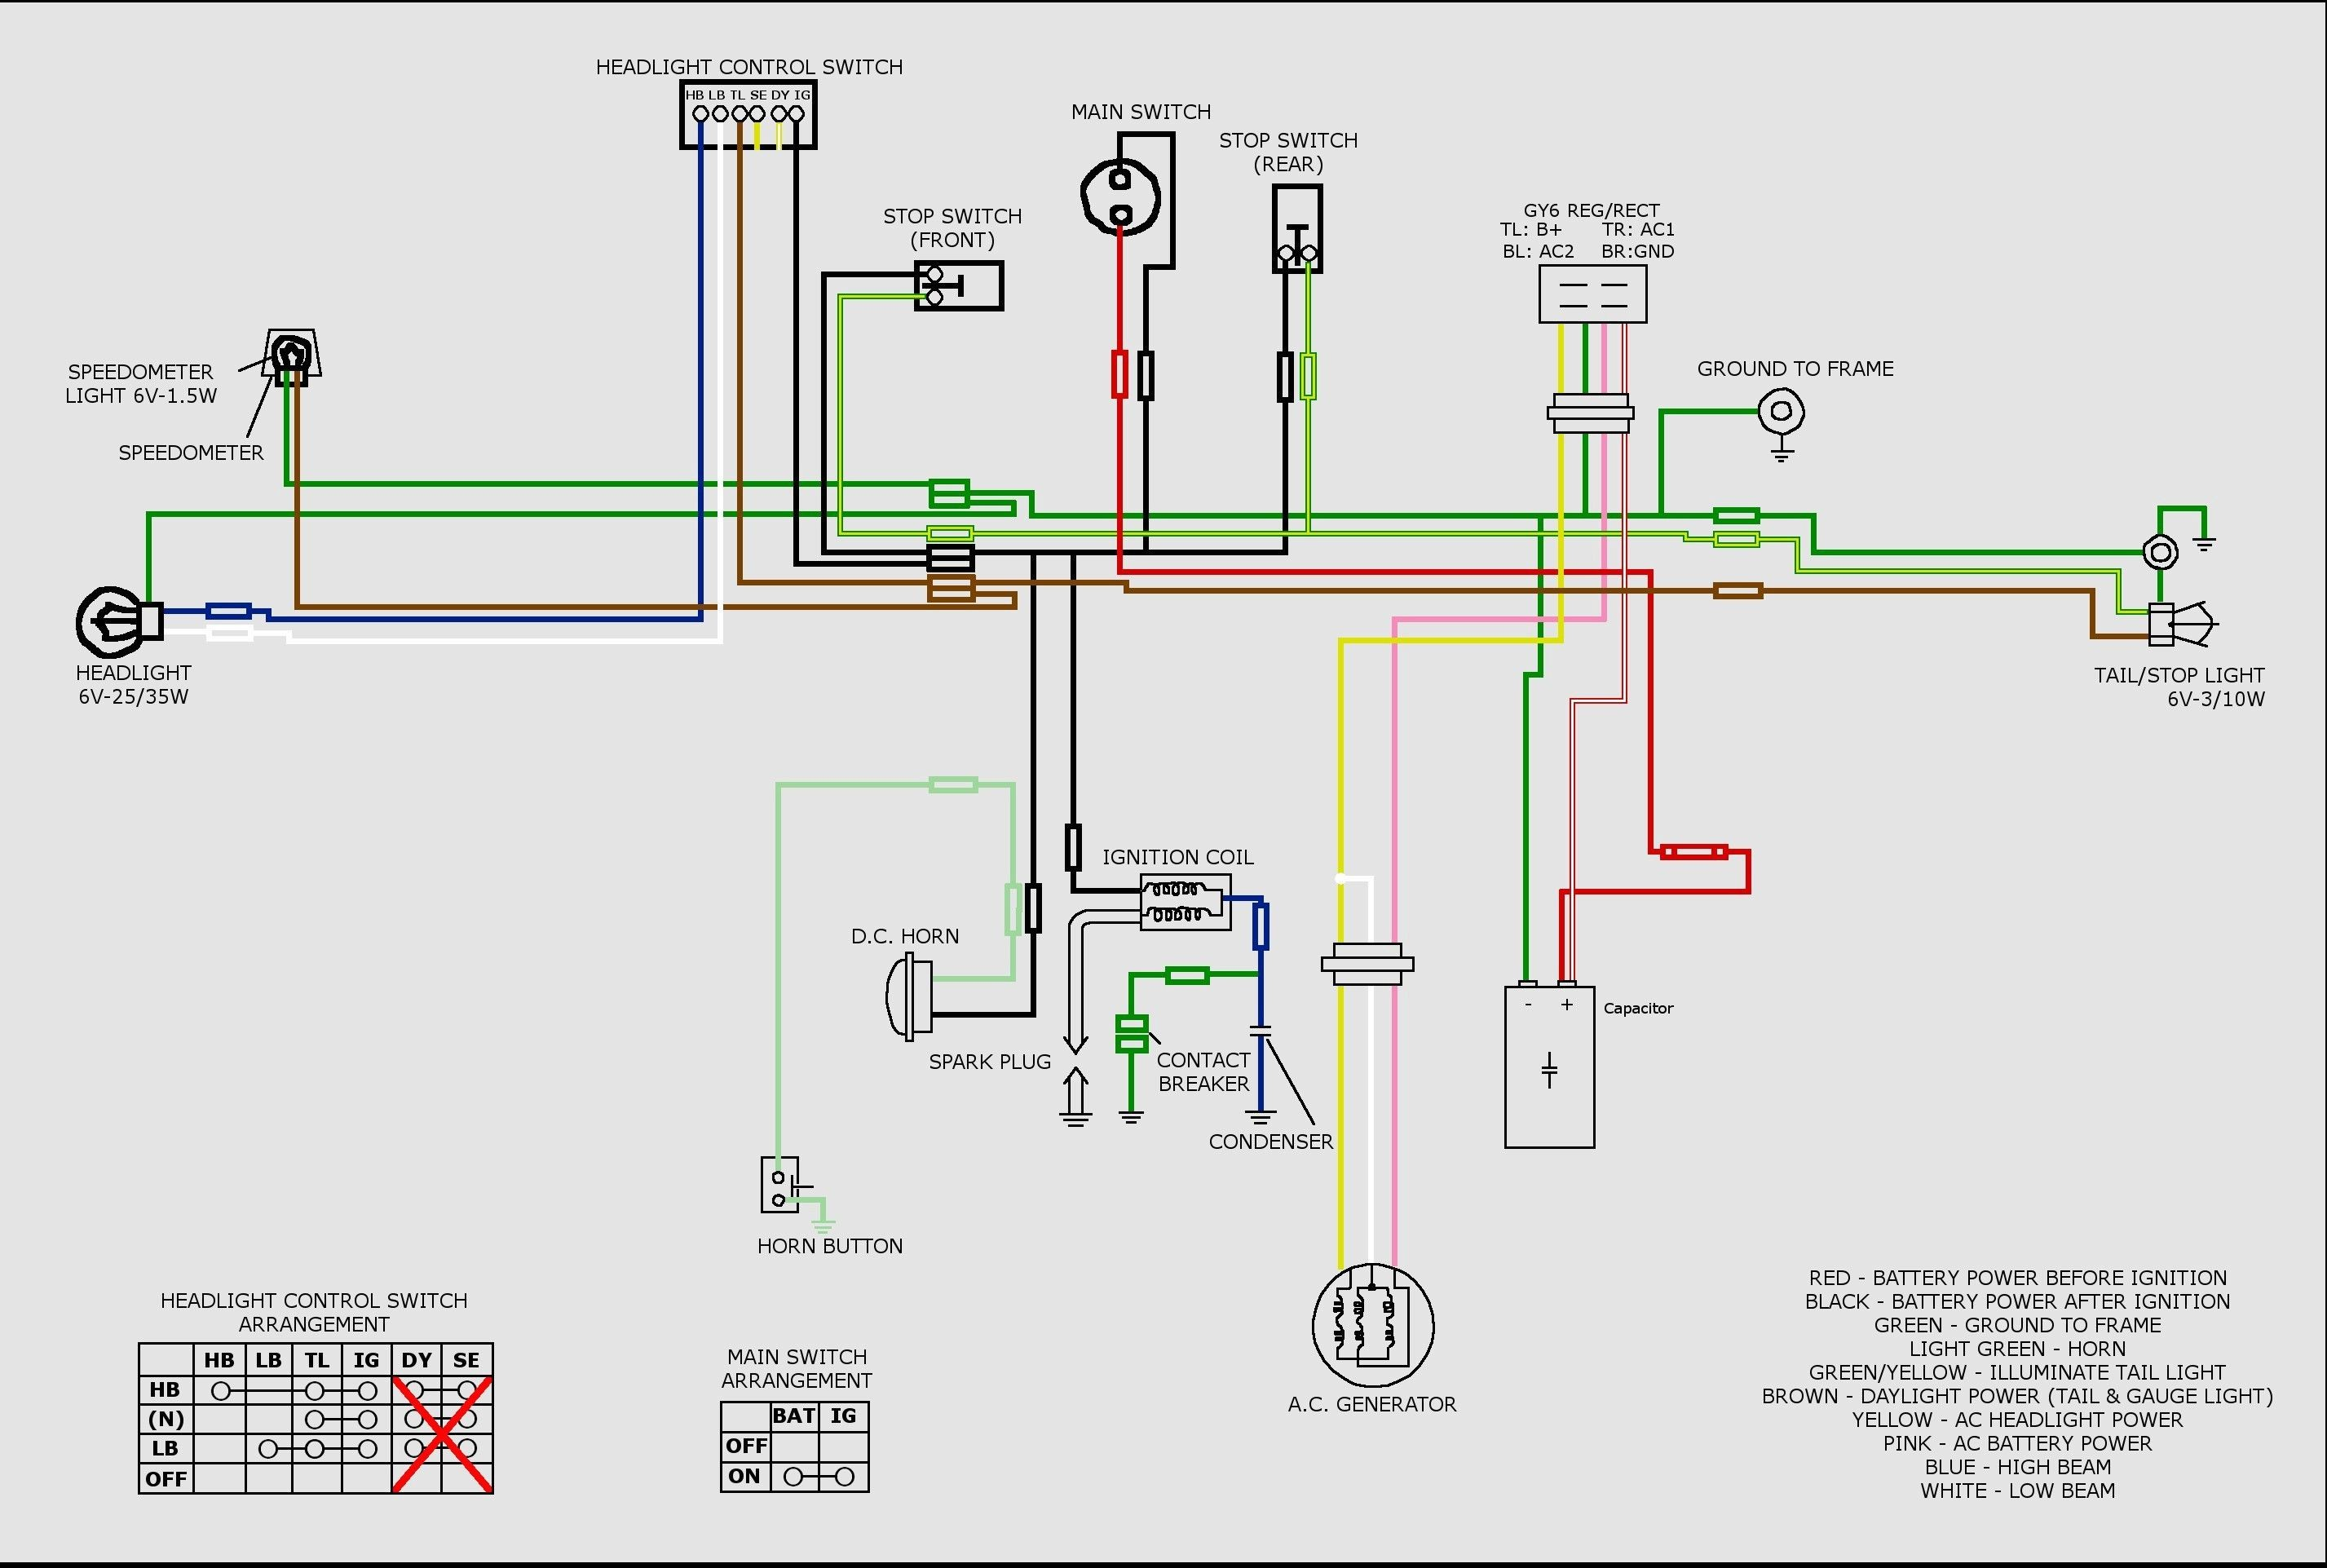 Light Switch Wiring Super M Tractor Gy6 Wiring Diagram Awesome 150cc Gy6 Wiring Diagram within Of Light Switch Wiring Super M Tractor